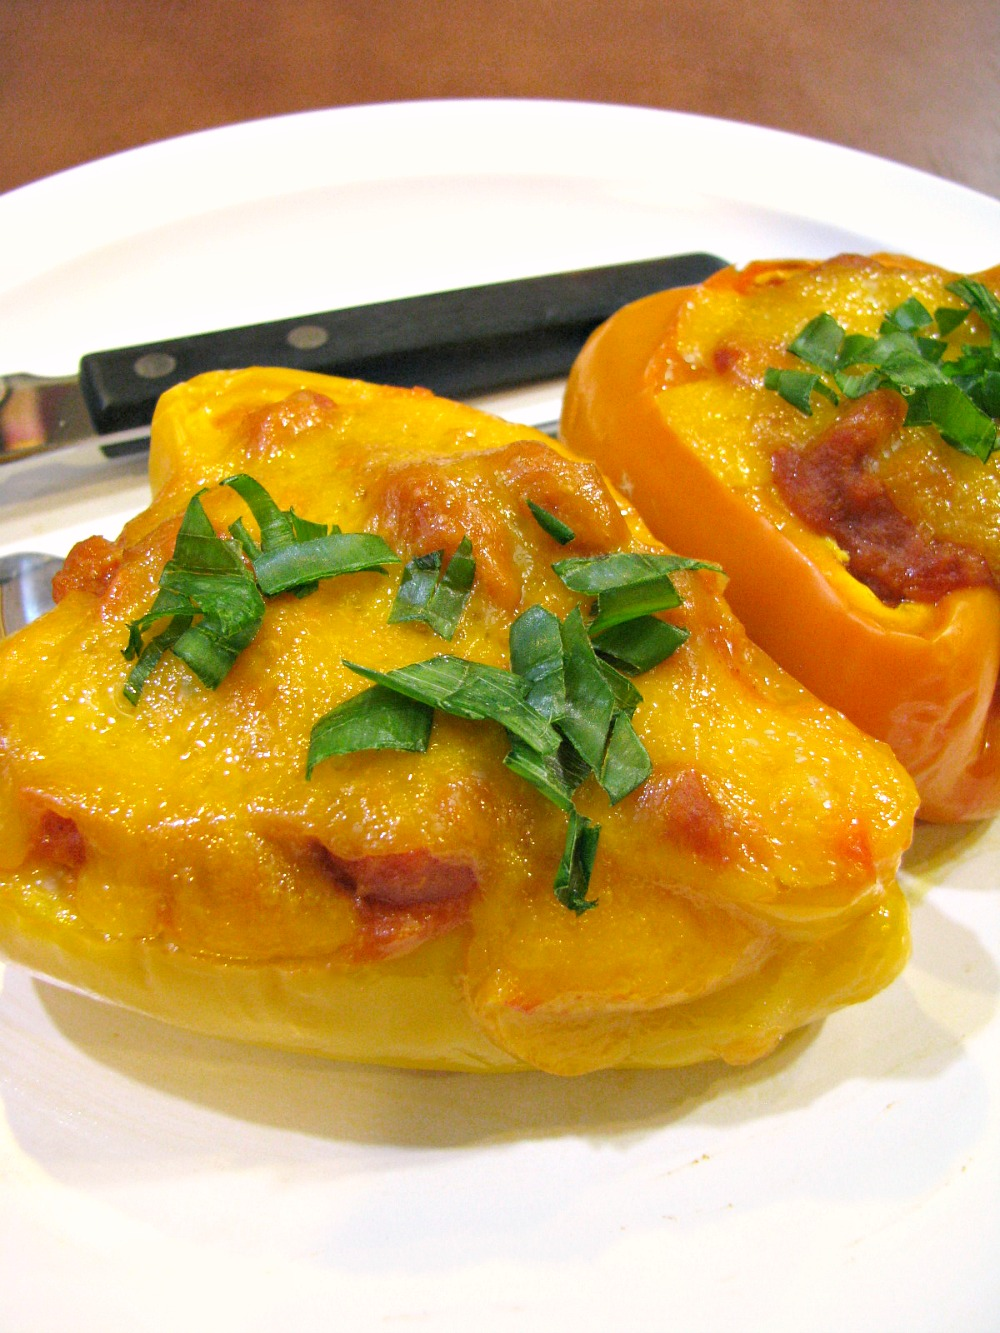 Cheesy, flavorful, and healthy Sloppy Joe Stuffed Peppers! These stuffed peppers are filled with ground chicken, traditional Sloppy Joe MANWICH sauce, pumpkin puree, carrots, celery, and Gouda cheese, then topped with cheddar cheese.